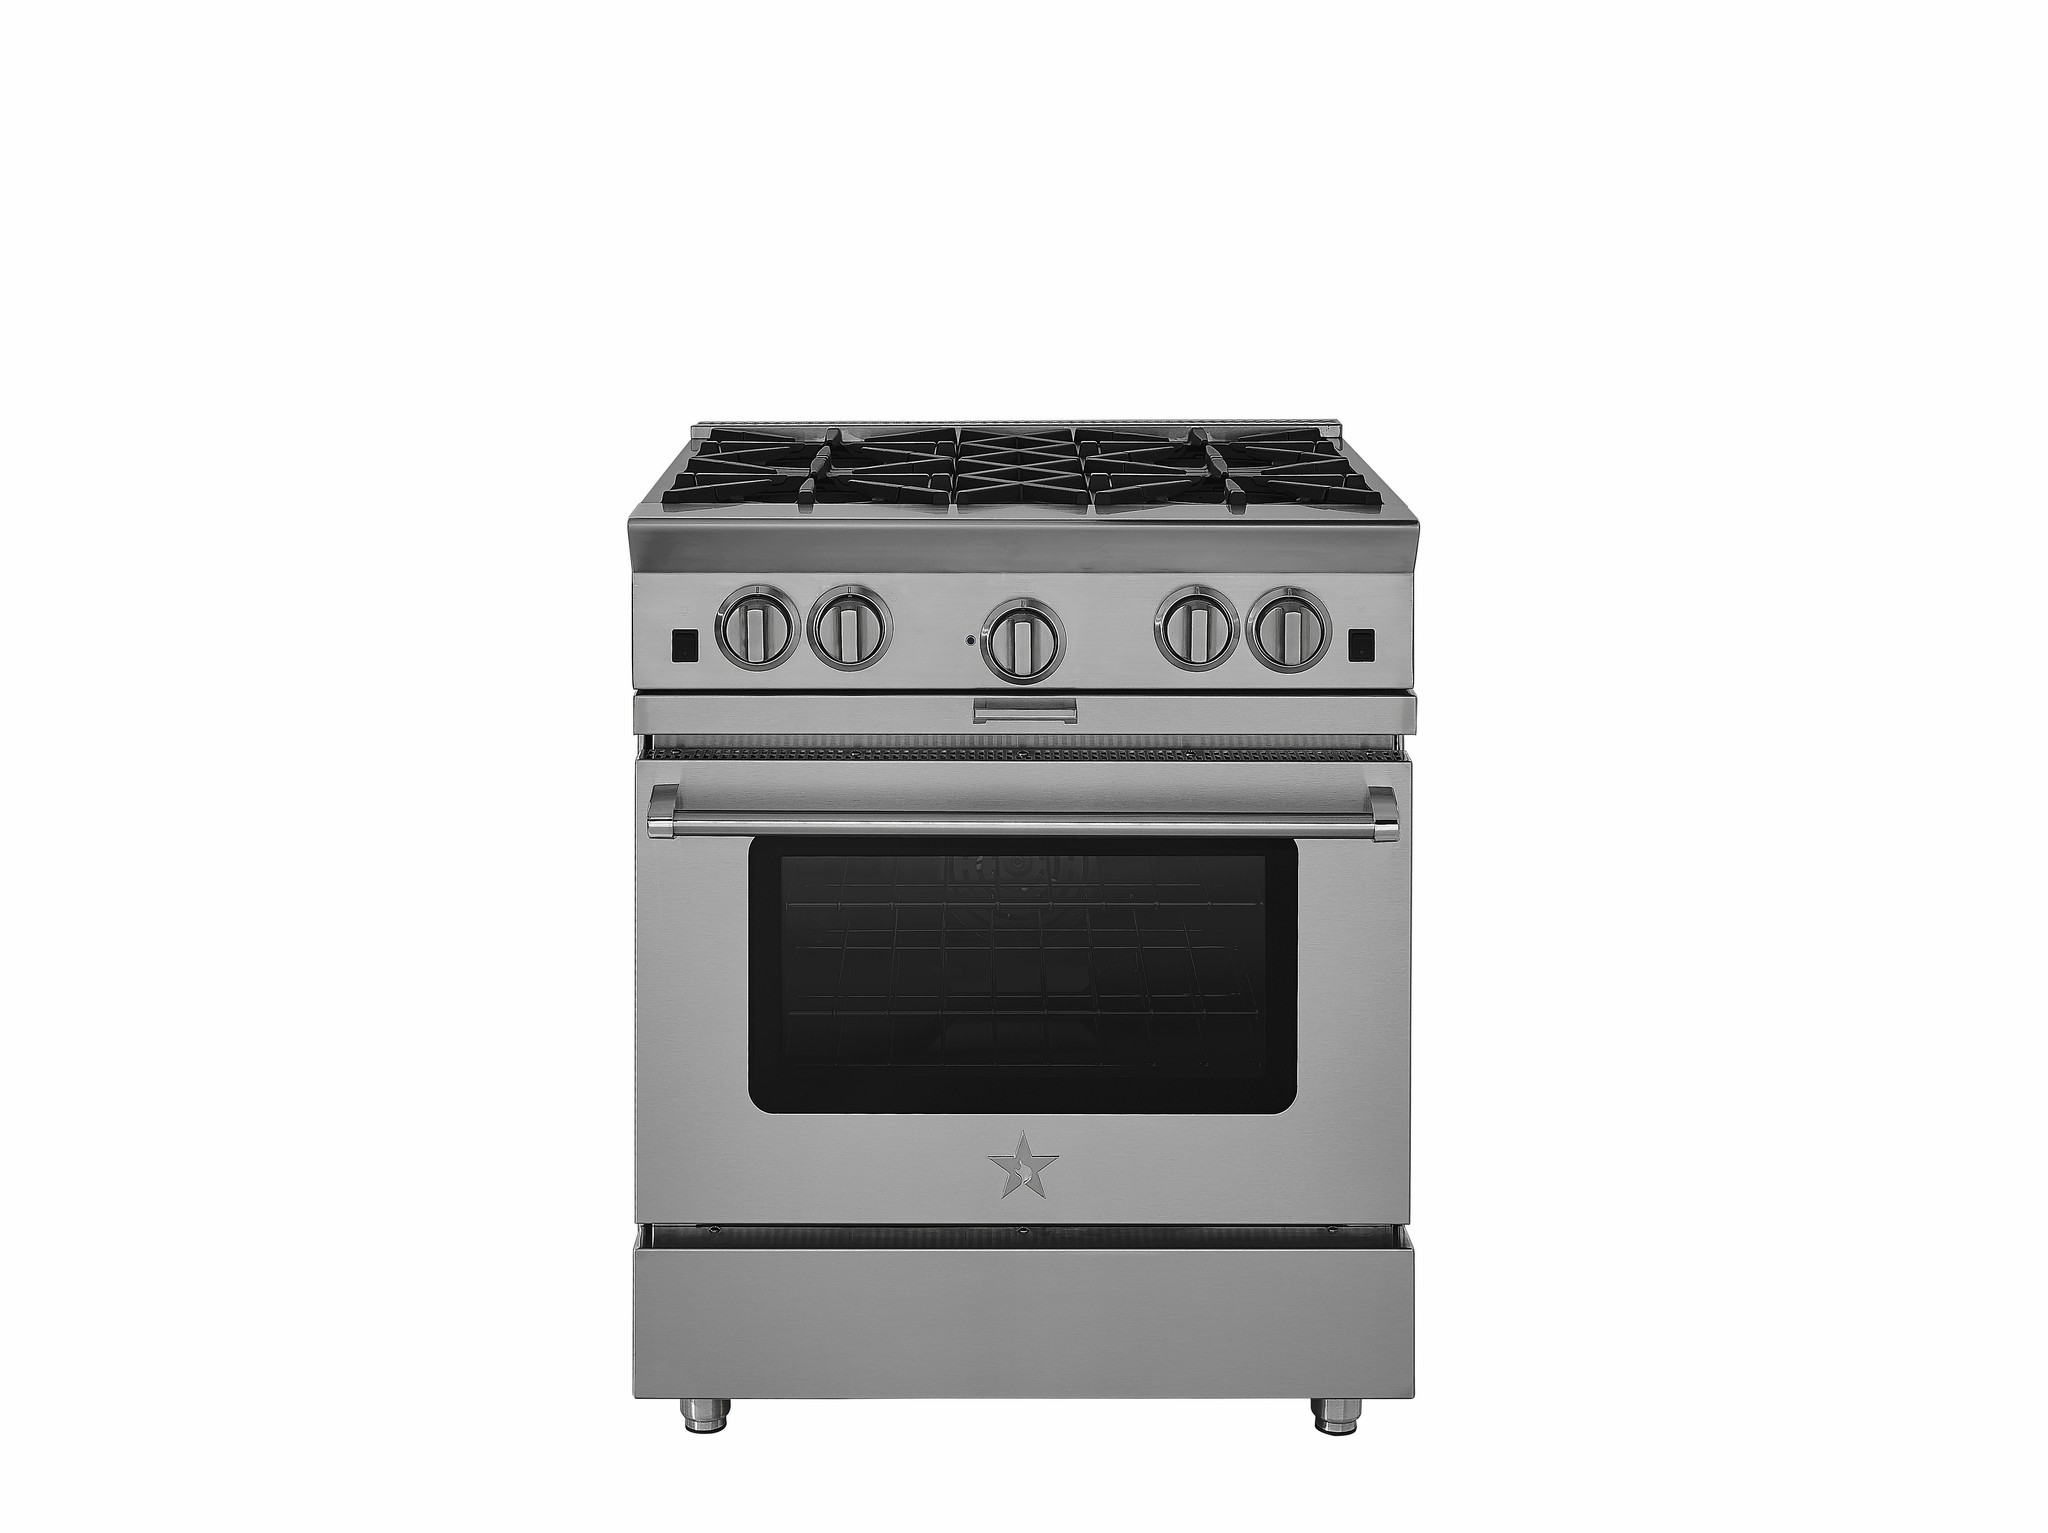 How to buy a pro-style range oven - Chicago Tribune